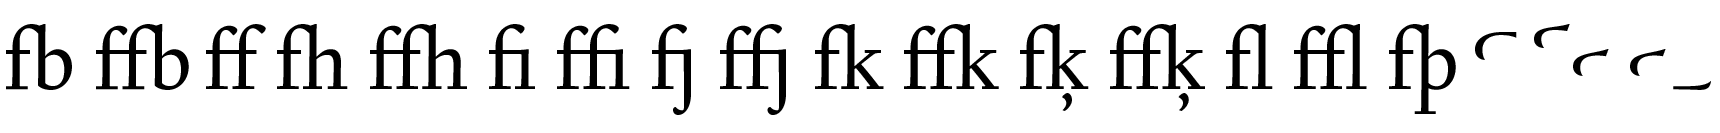 <p>Ligatures &amp; swash elements</p> glyphs